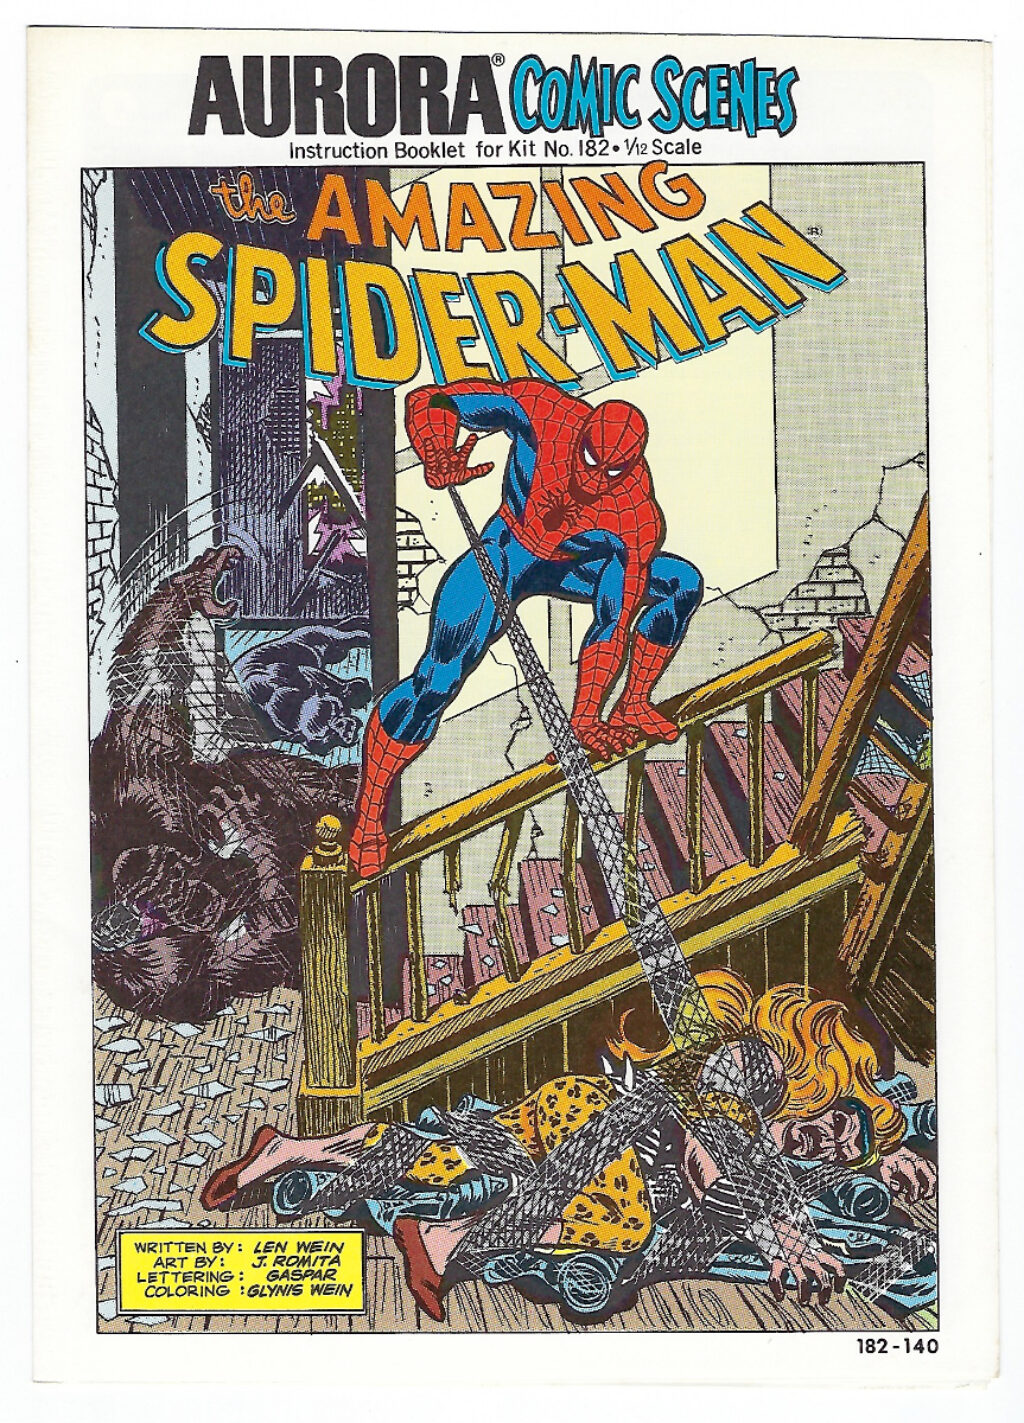 Aurora Comic Scenes Amazing Spider-Man Model Kit Comic Book & Instructions Booklet 1